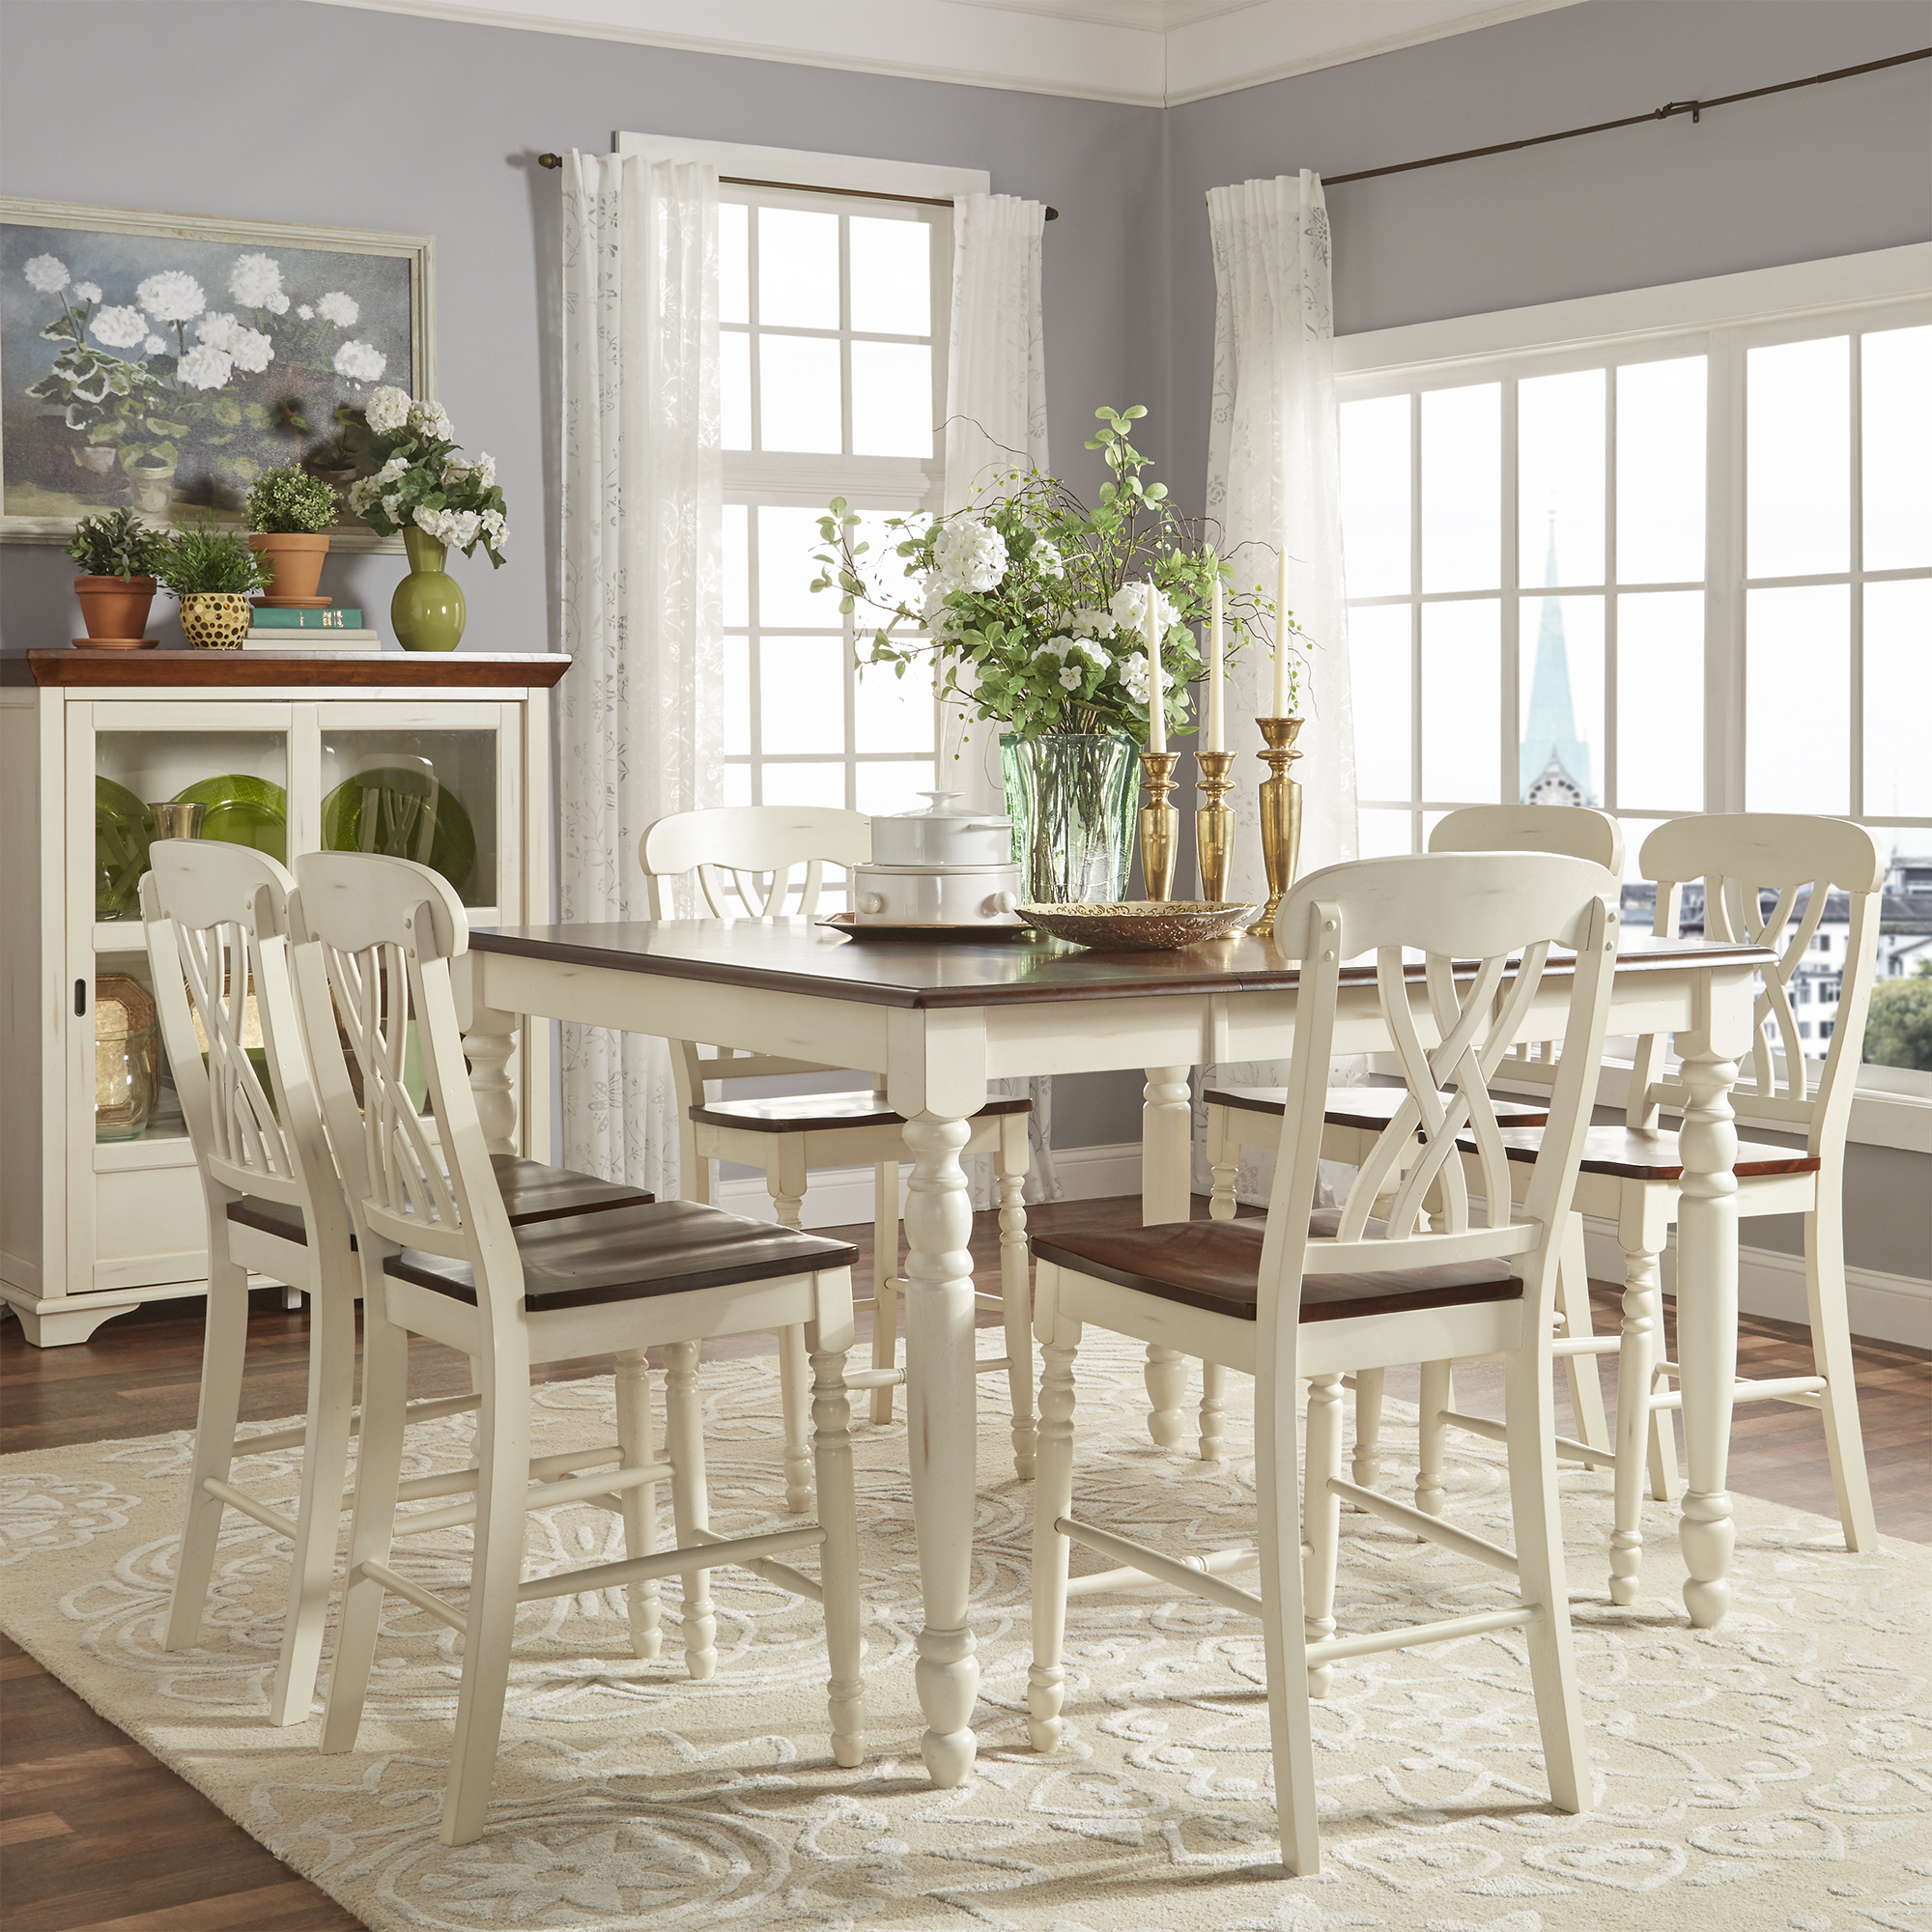 antique white dining chairs chair covers to buy cape town weston home two tone 7 piece counter height set walmart com